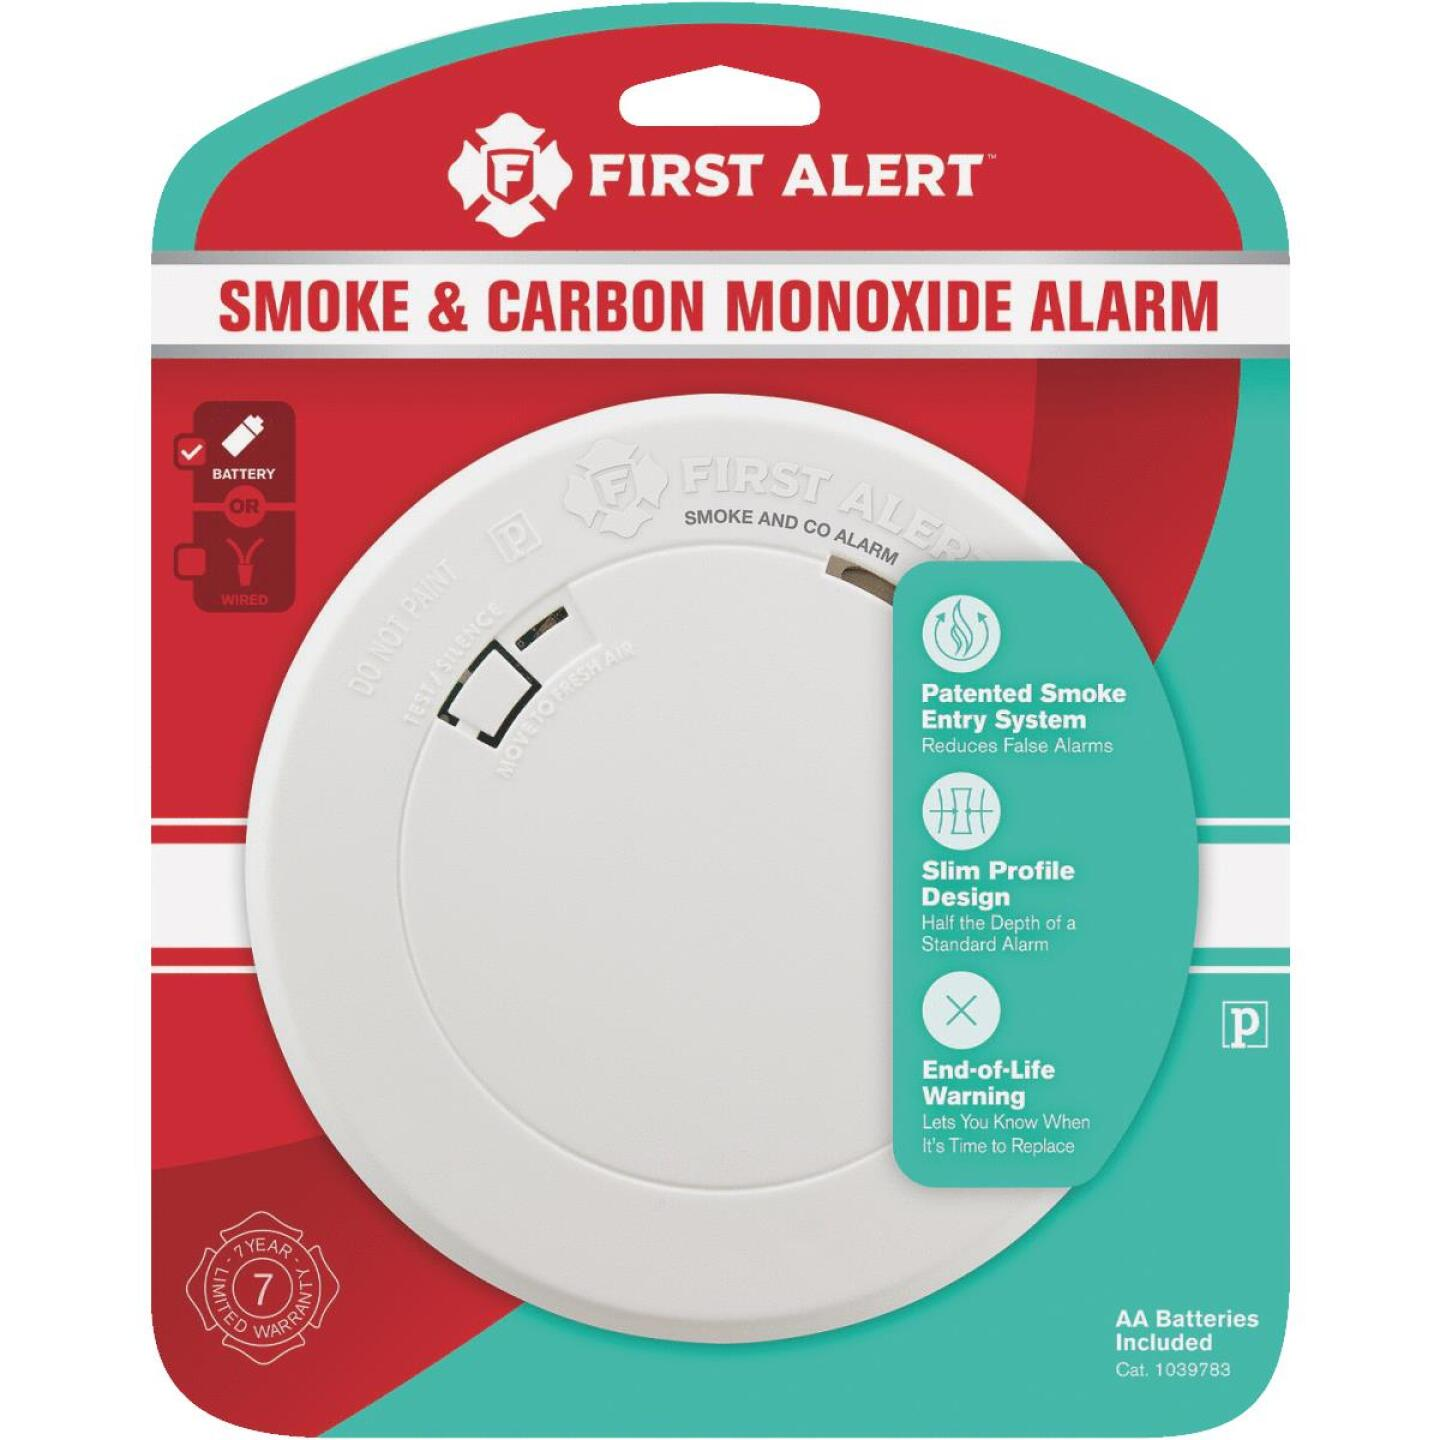 First Alert Battery Operated 3V Photoelectric Carbon Monoxide and Smoke Alarm Image 2